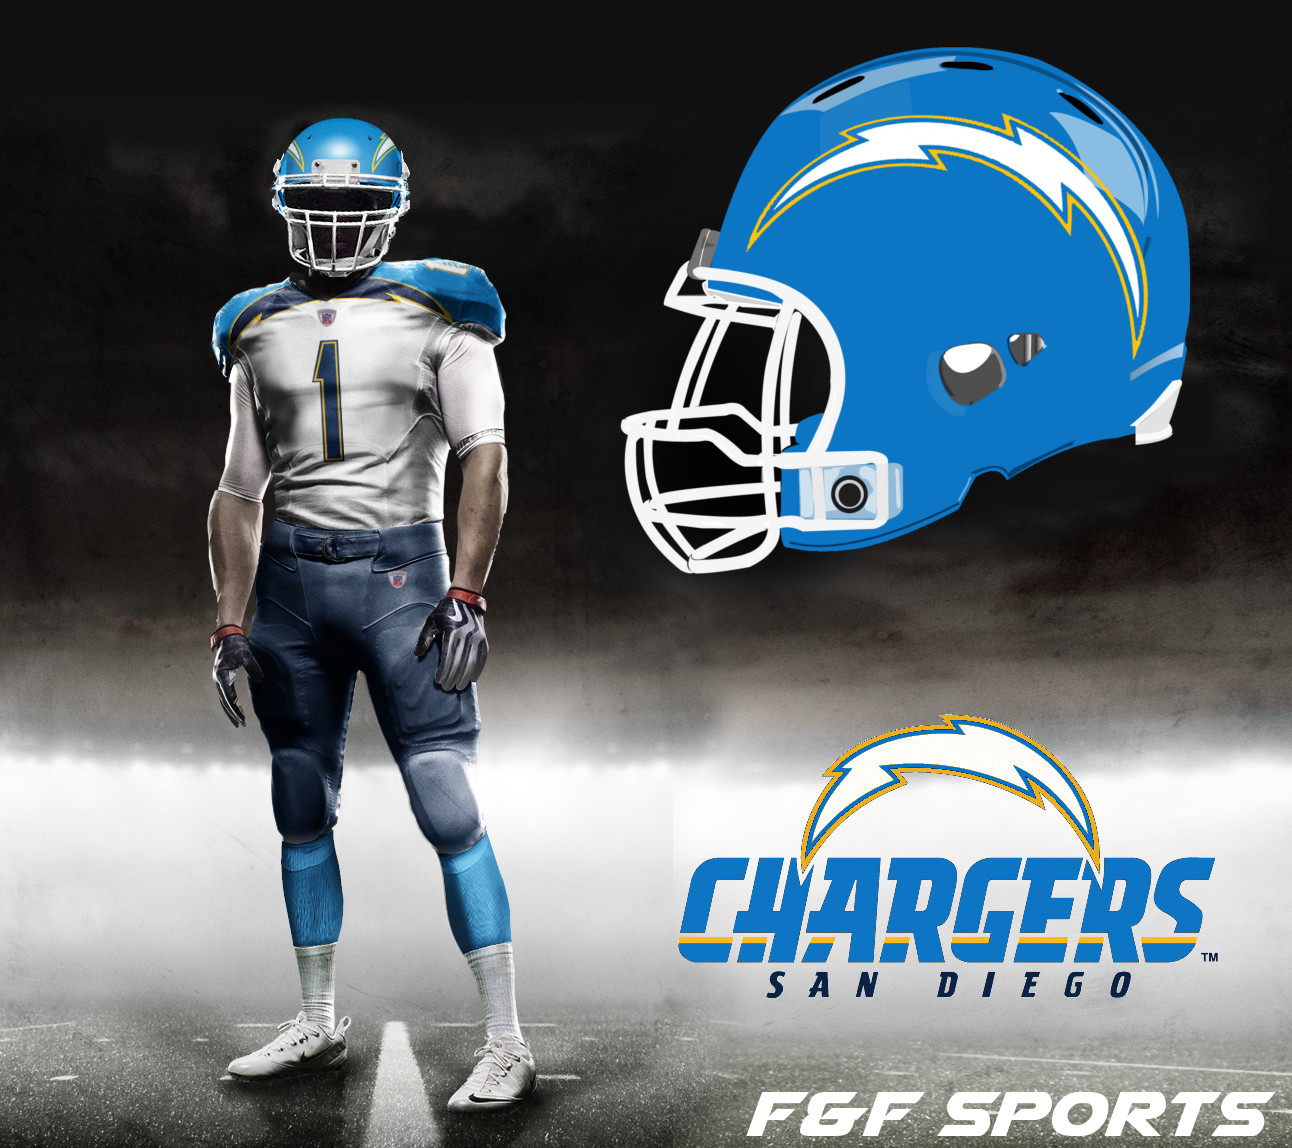 San Diego Chargers Football: F&F Sports